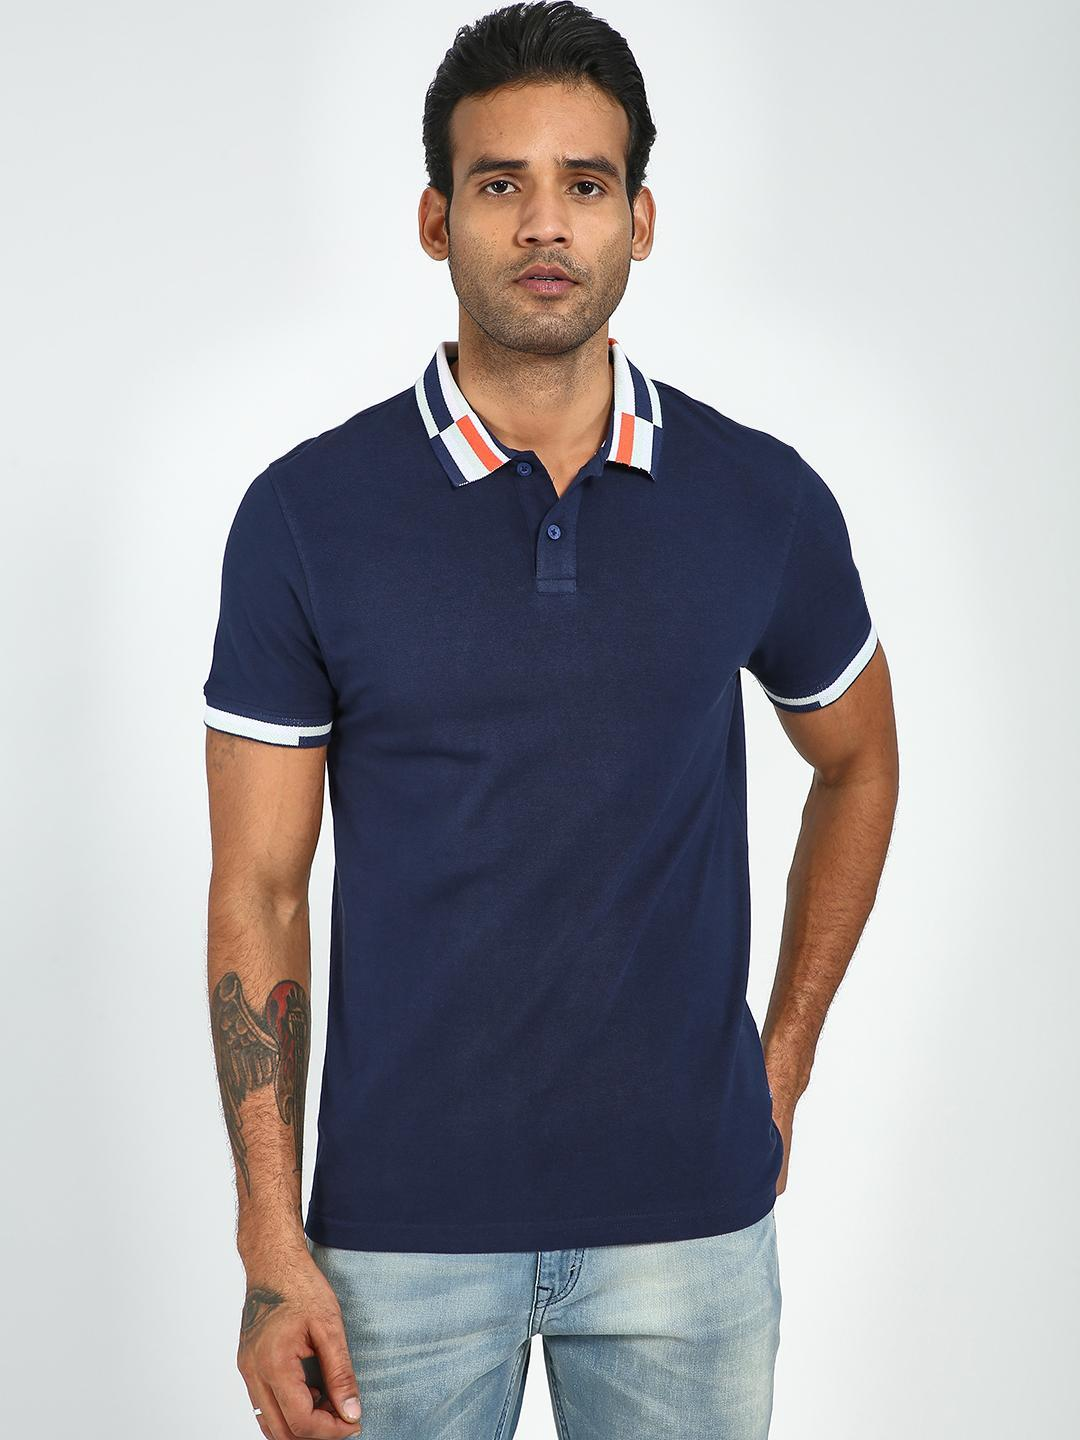 Blue Saint Navy Contrast Collar Polo Shirt 1